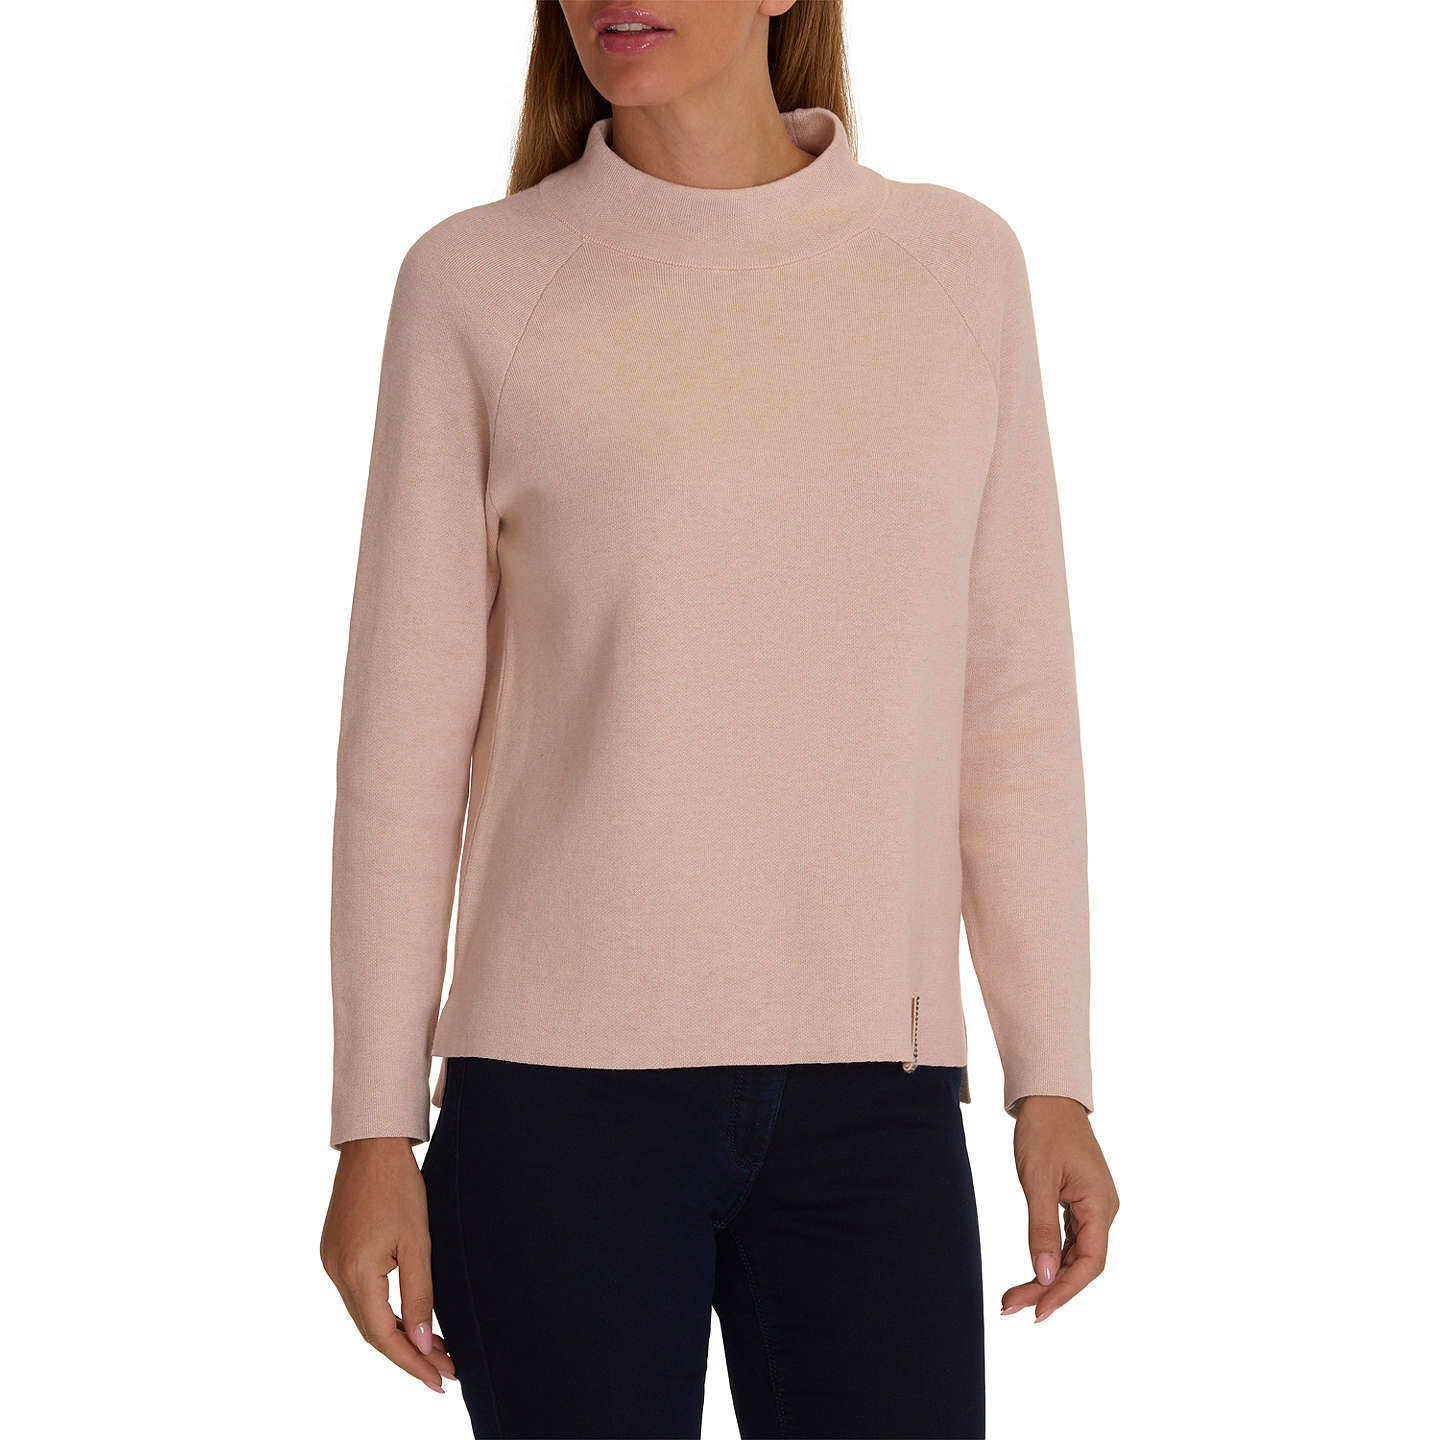 BuyBetty Barclay Double Knit Jumper, Light Rose Melange, 10 Online at johnlewis.com